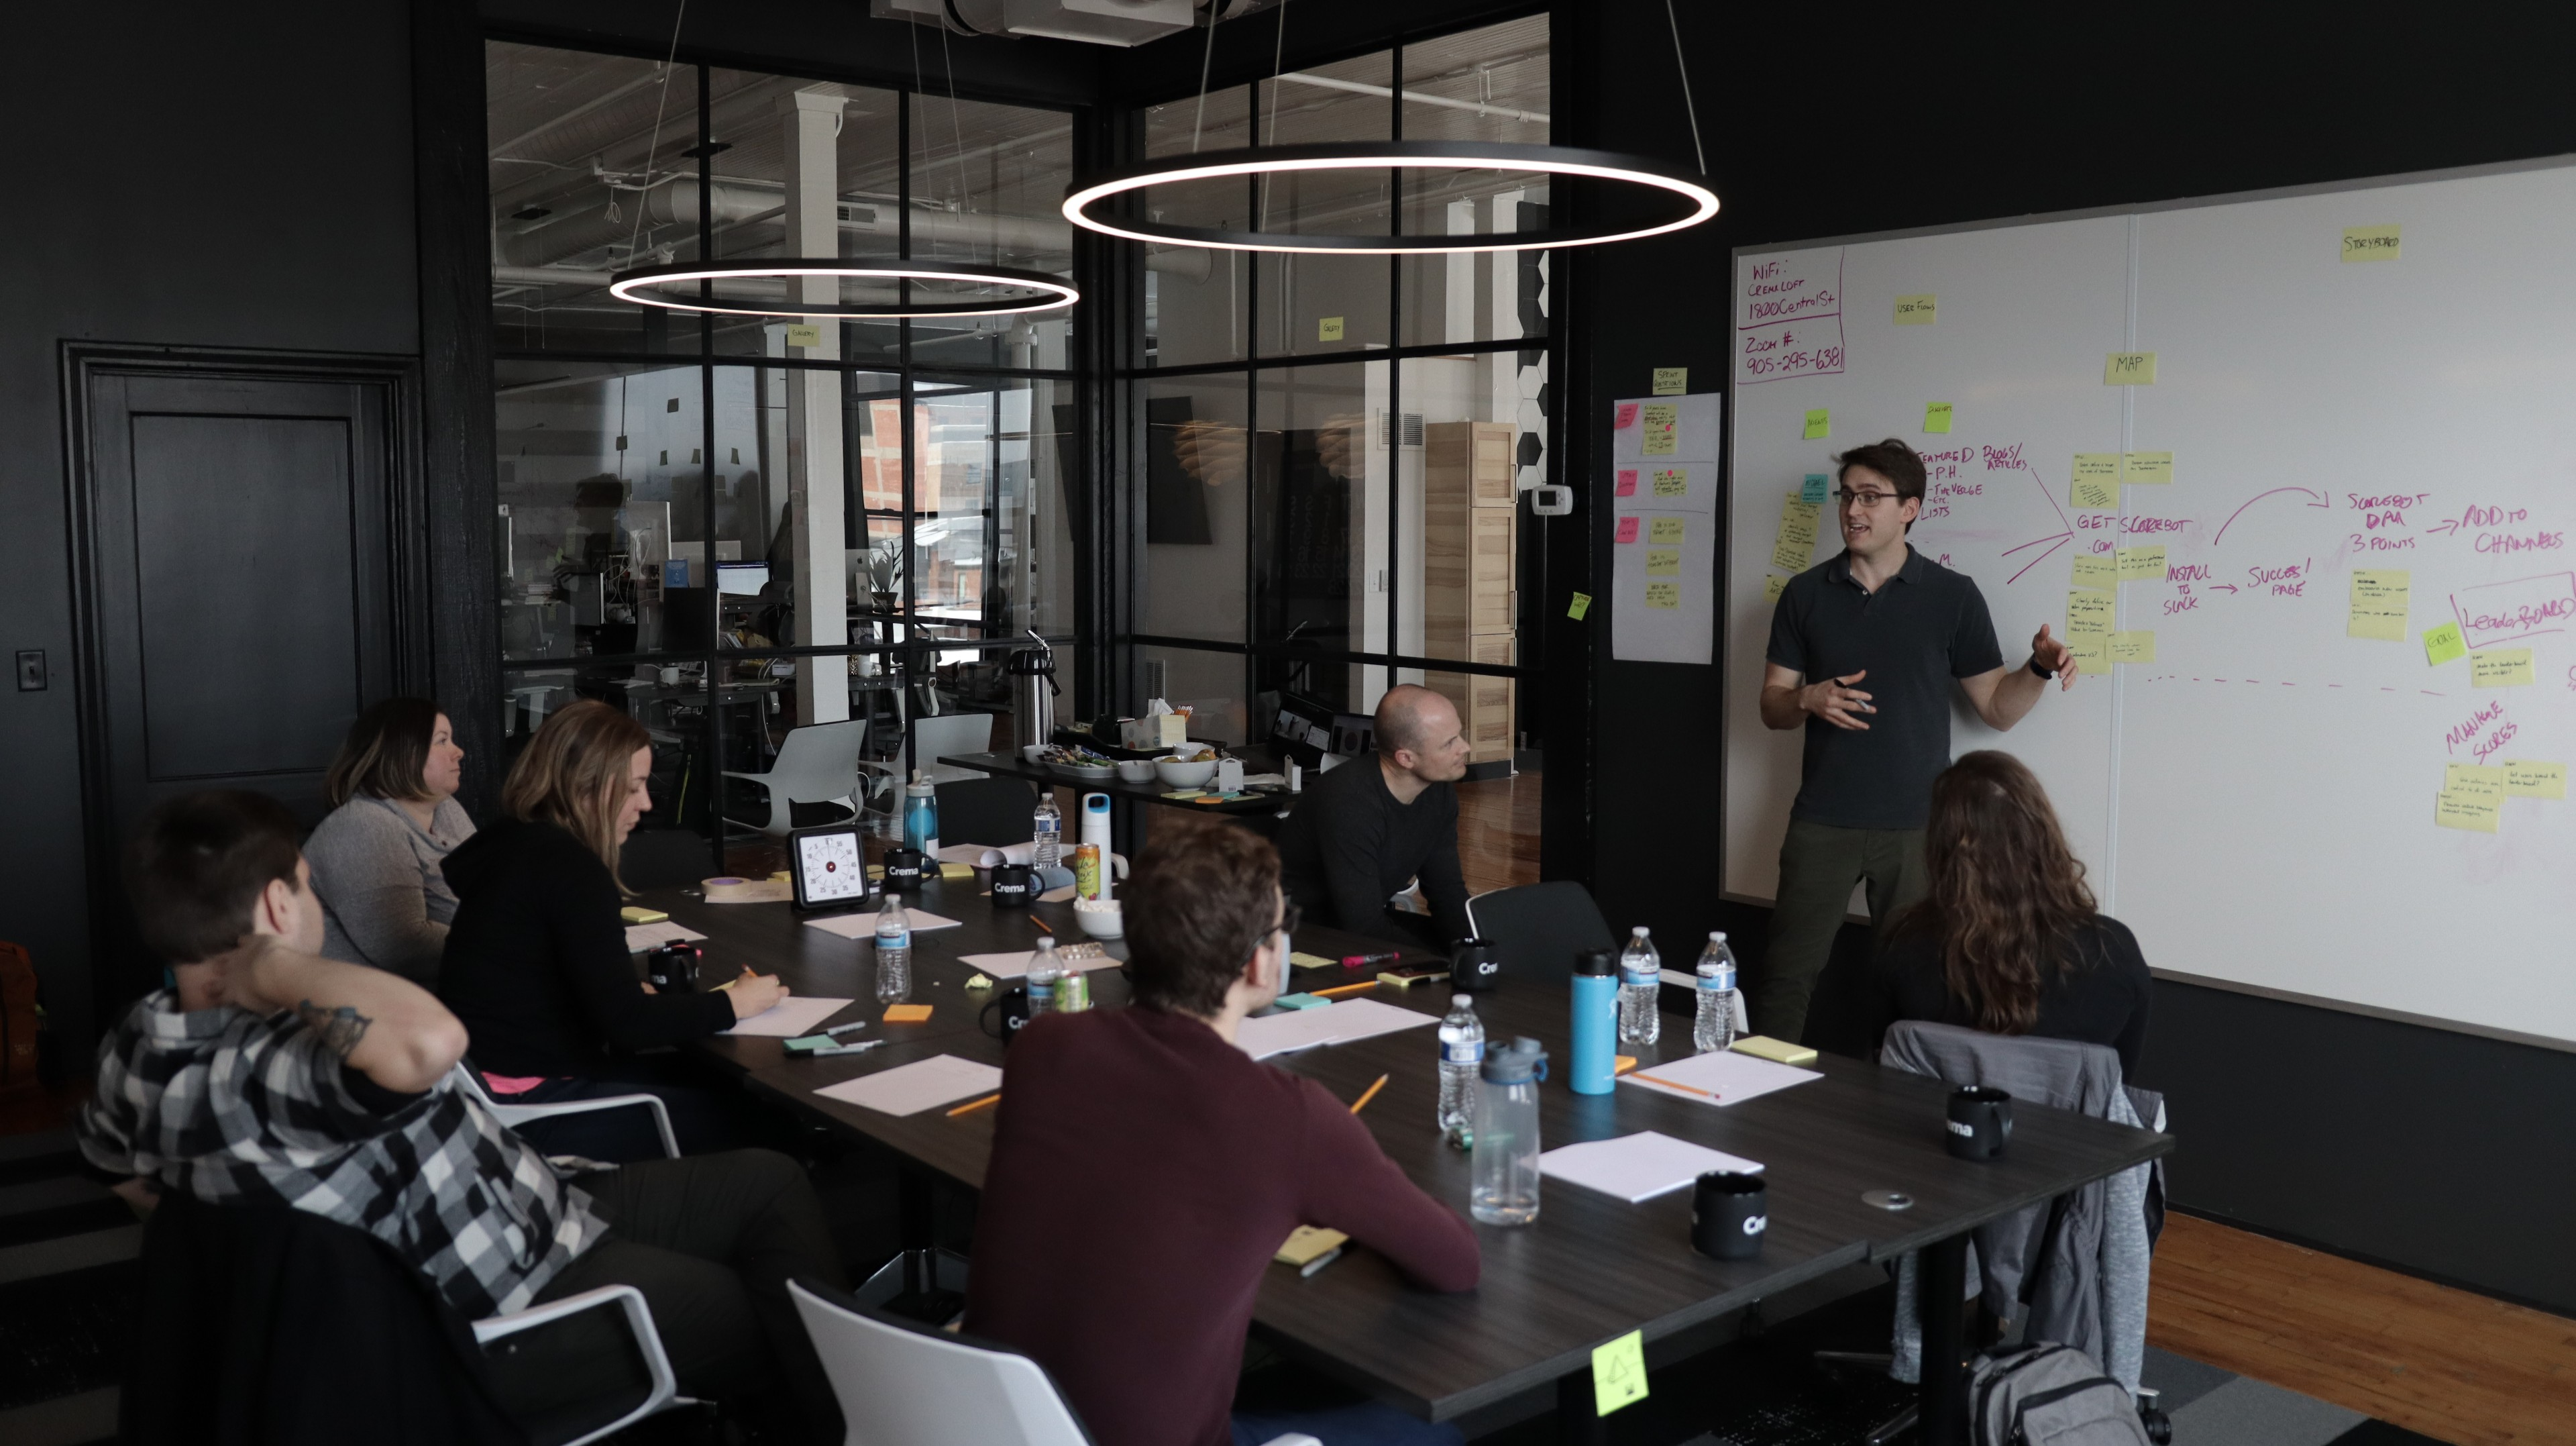 Justin Mertes standing in front of group of people and facilitating design sprint in crema loft